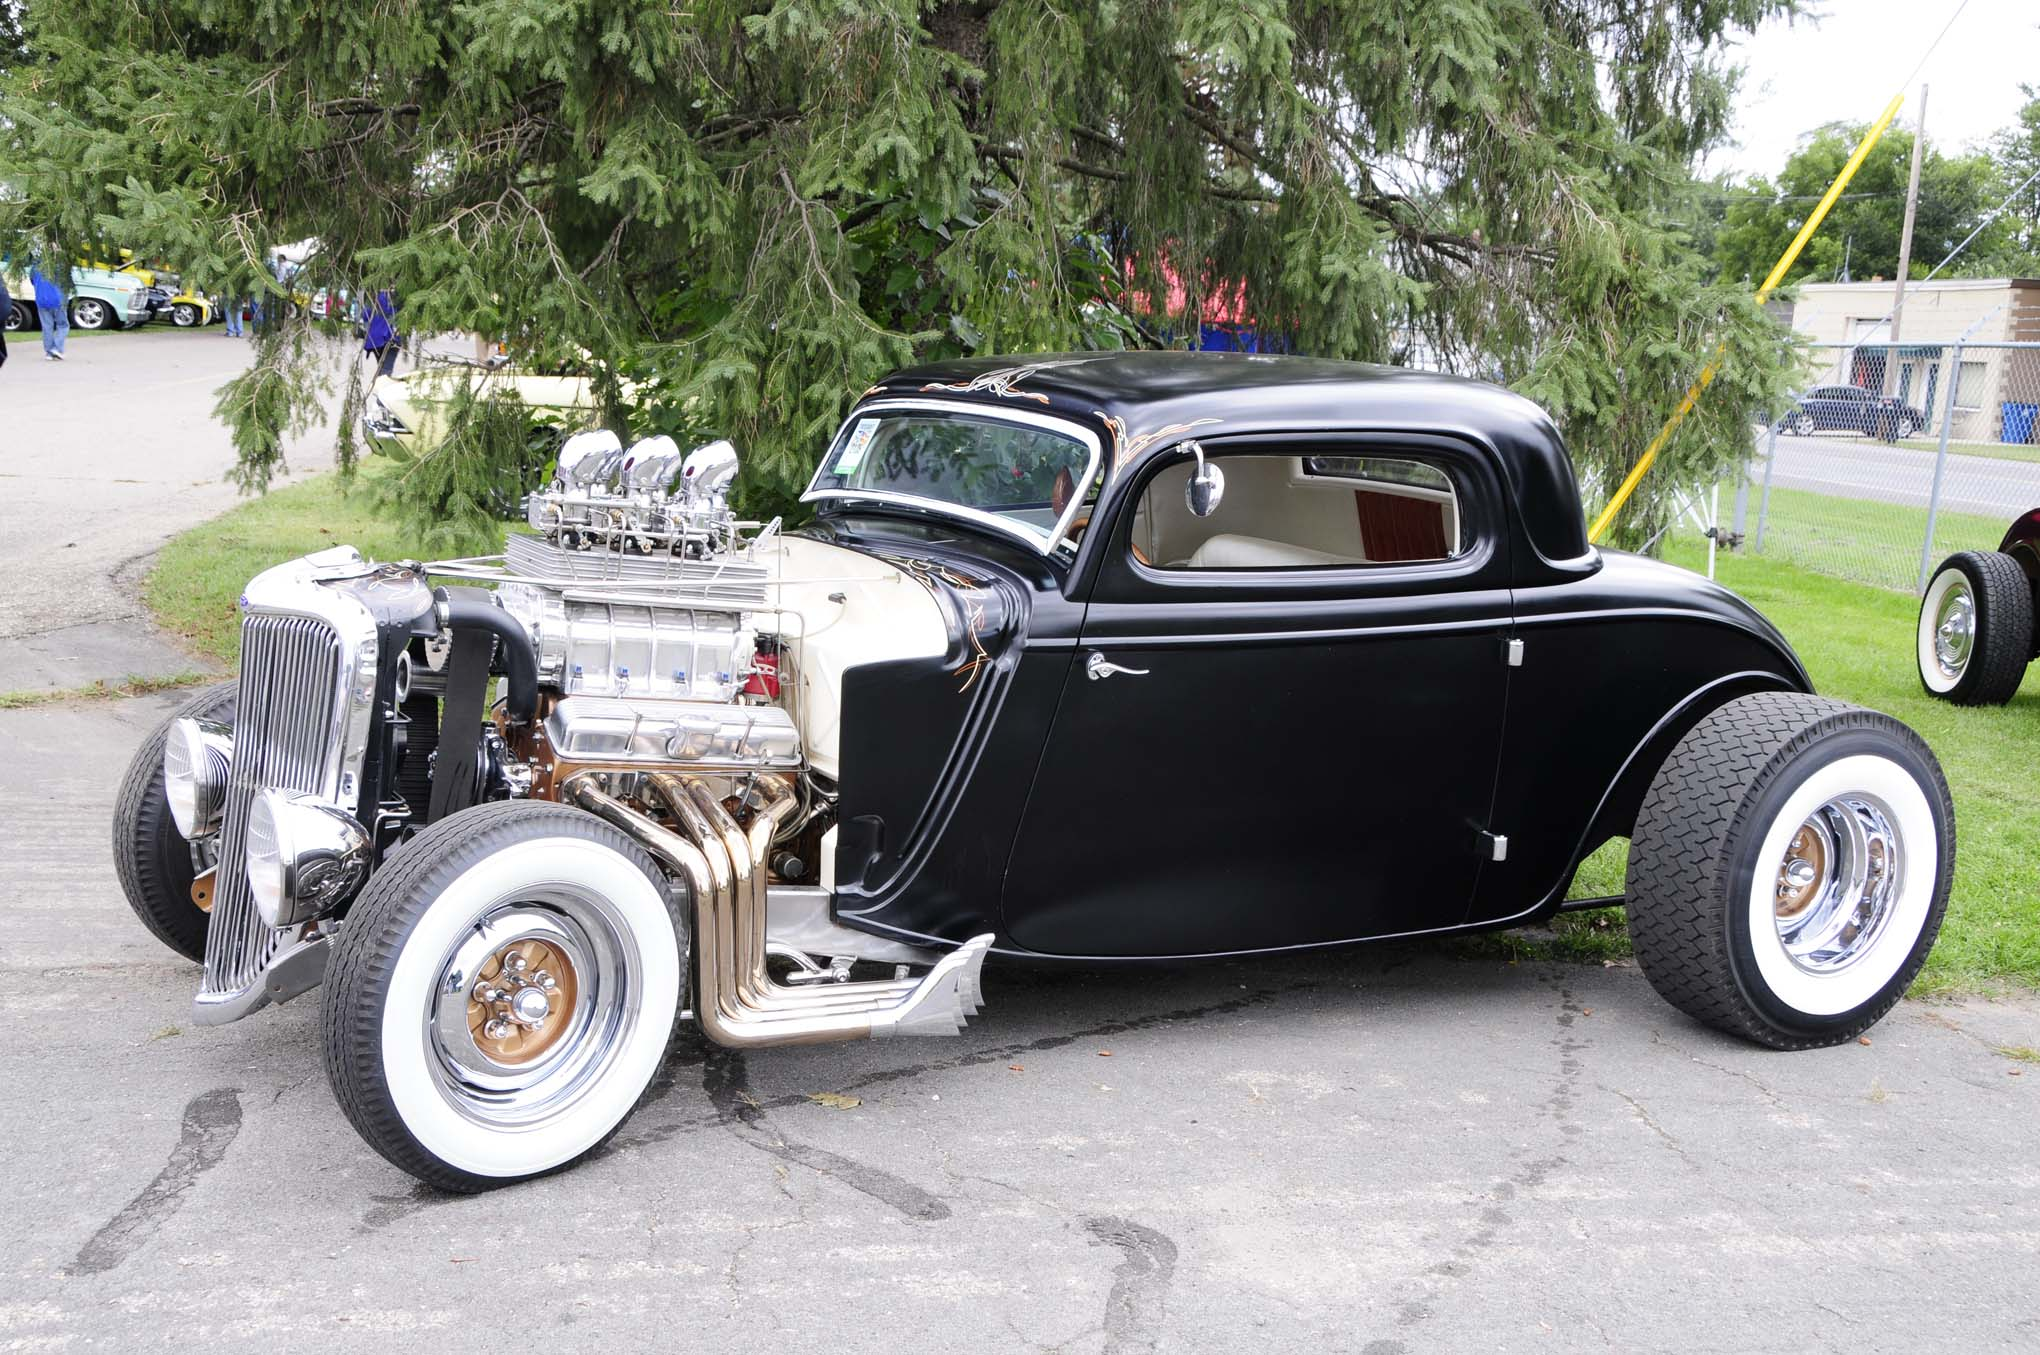 Chopped, channeled, and coated in polished black suede and spinning cheater slicks, Aaron Bunch's 1934 Ford packed a huffed six-deuce fed small-block for power.